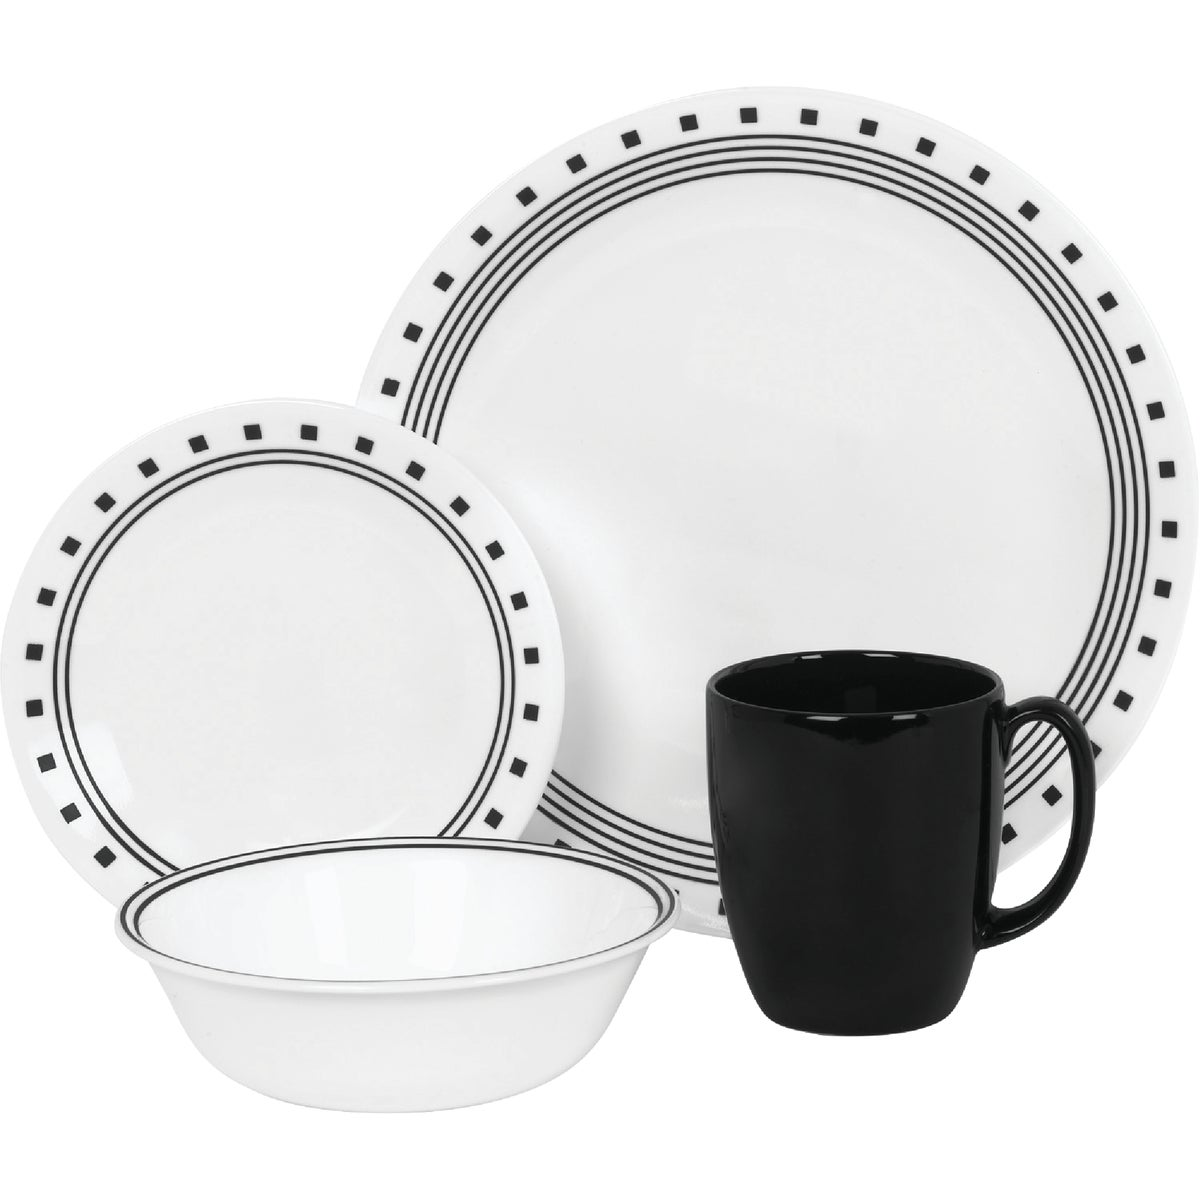 16PC CITY BLK DINNERWARE - 1074208 by World Kitchen